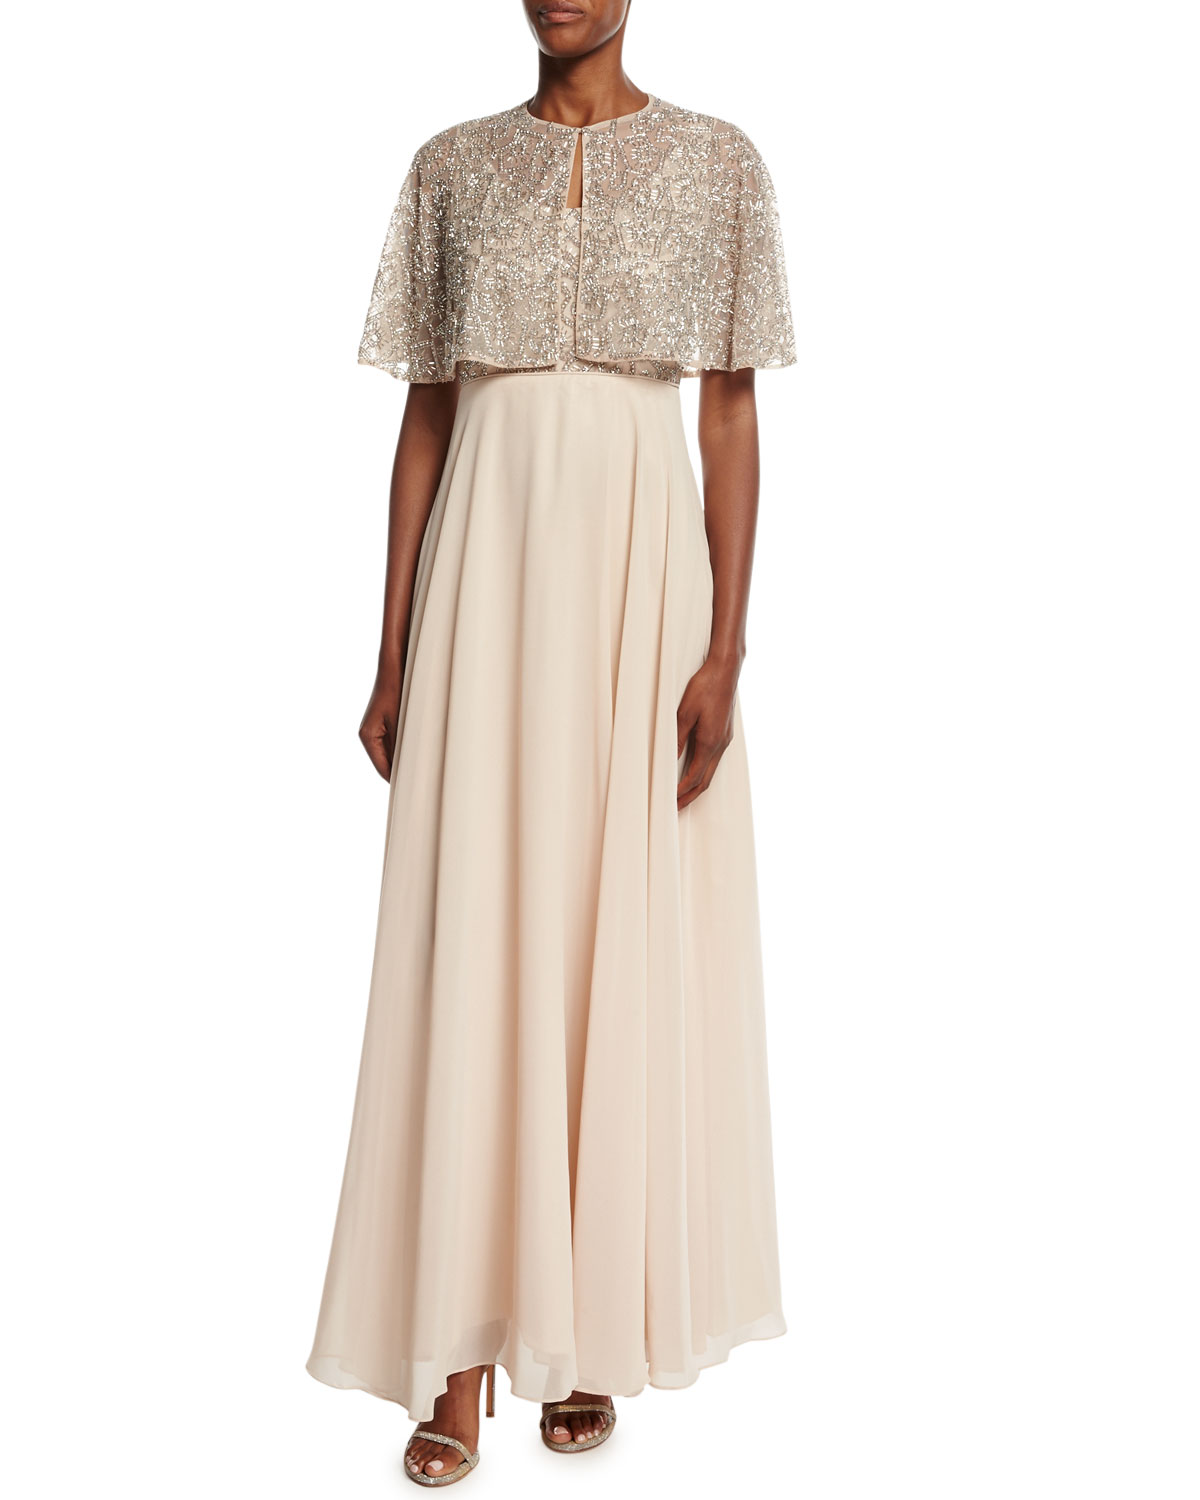 Badgley Mischka Dresses & Gowns at Neiman Marcus